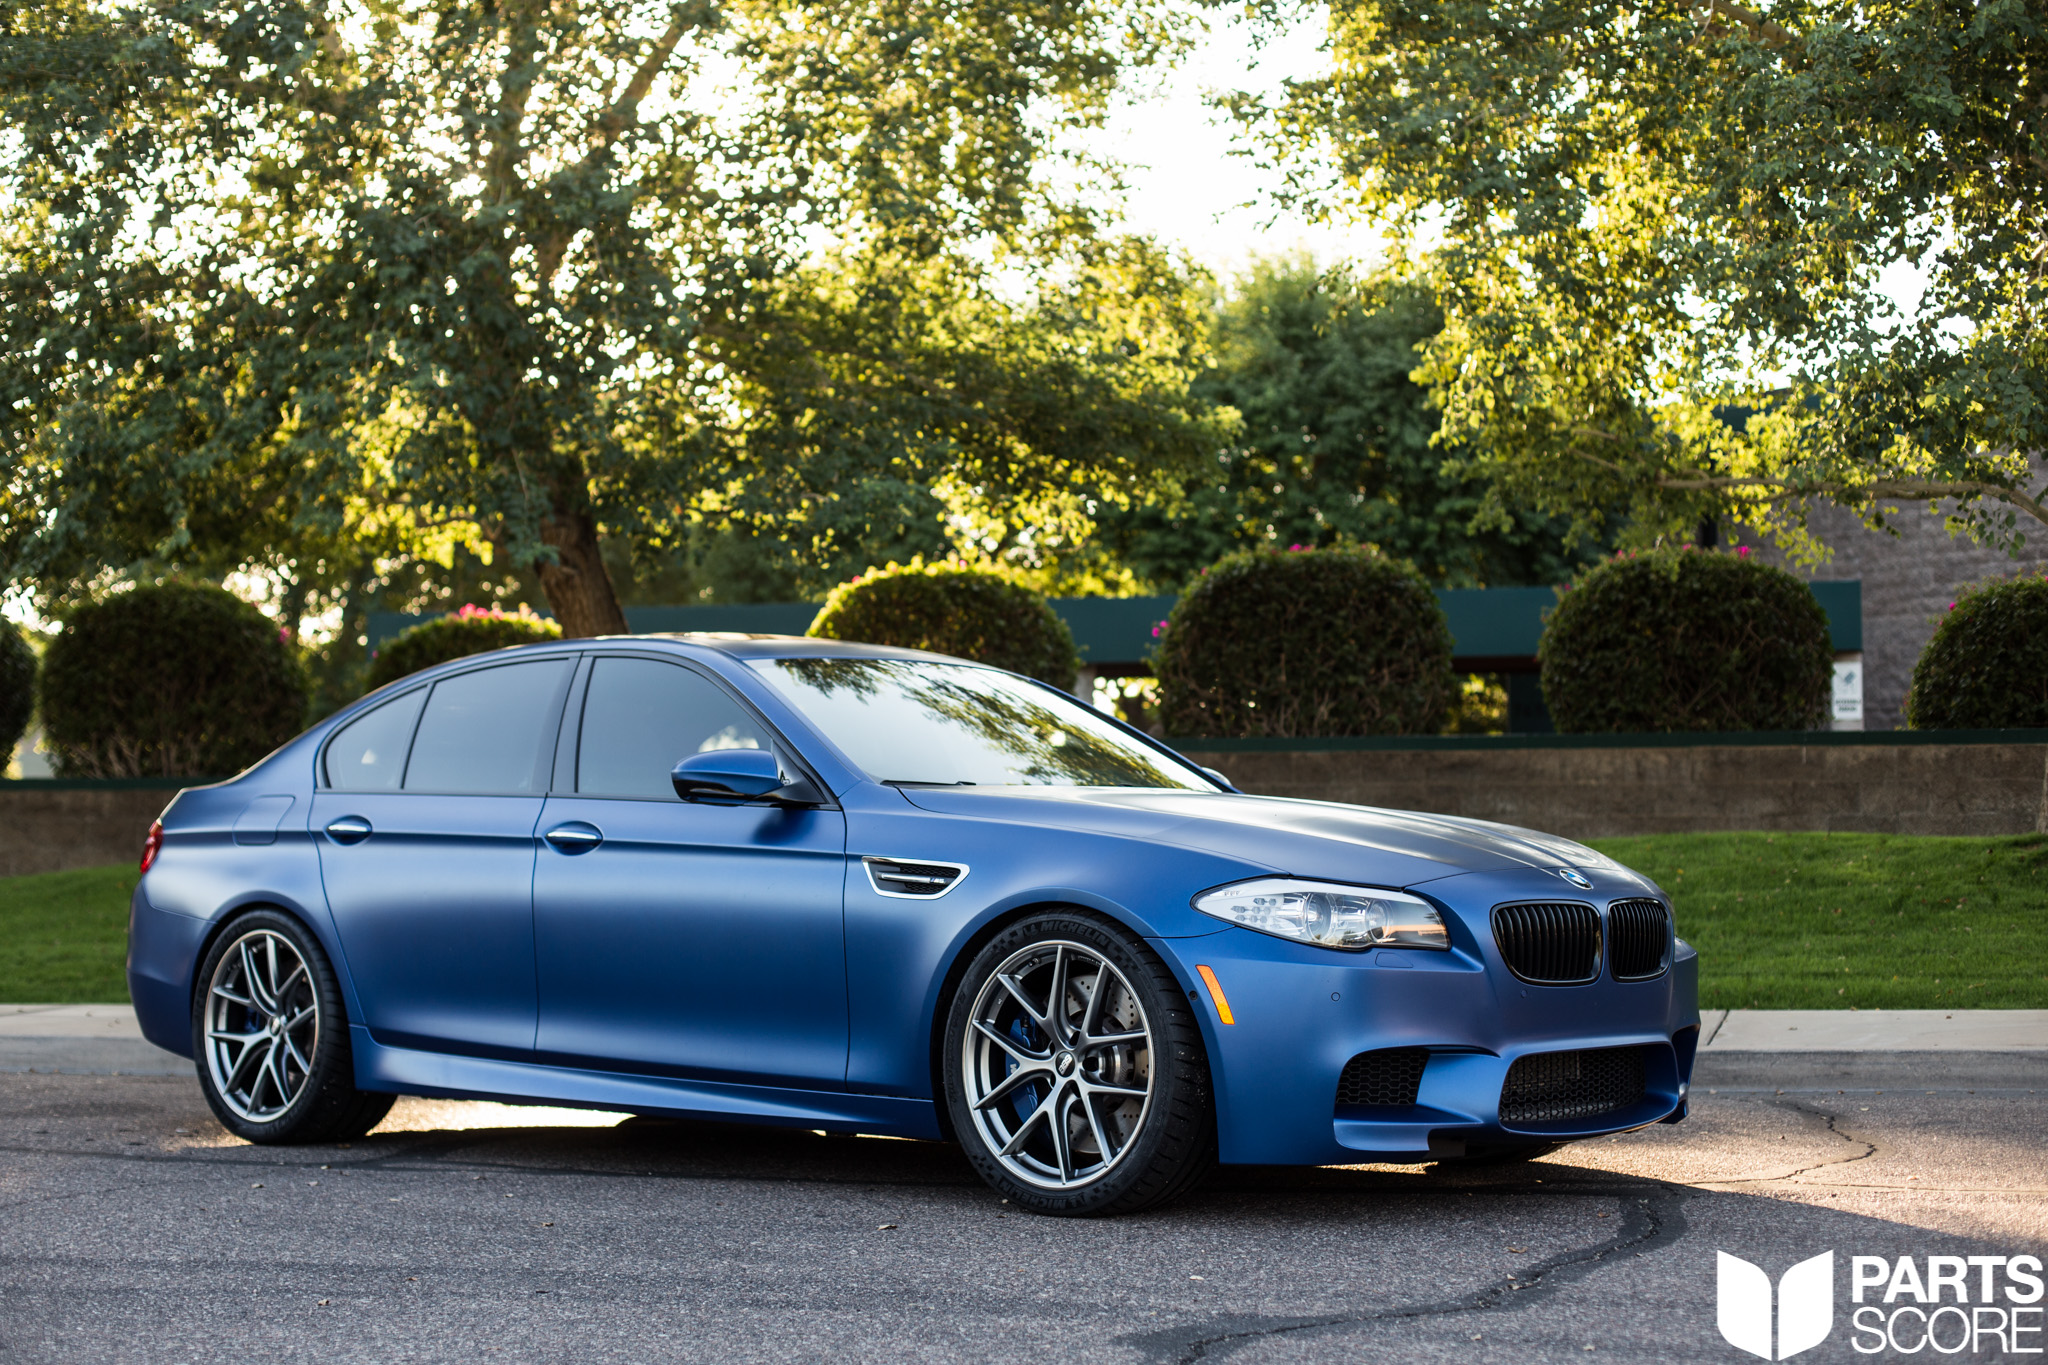 bmw, bmw m5, f10 m5, m5 ,f10, bbs, cir, bbs cir, bbs wheel, bbs wheels, low, michelin, stance, meaty, flow form